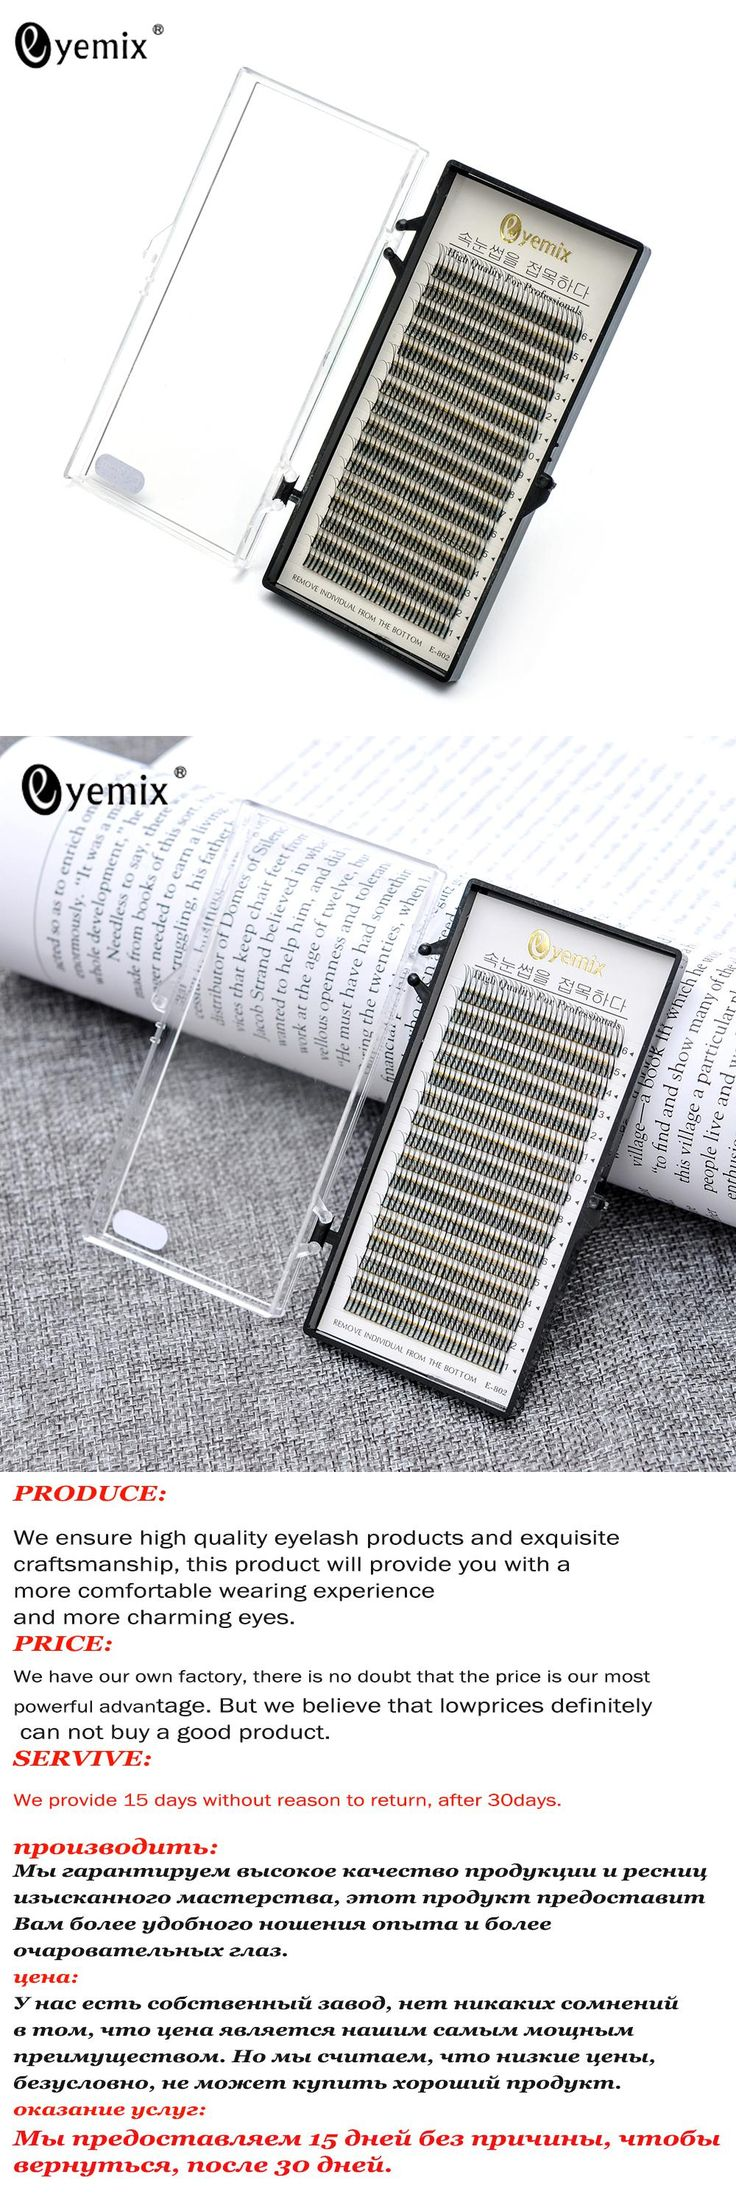 [Visit to Buy] Eyemix New arrive 16rows/Tray Synthetic Individual lash 0.15 Thickness C curl Black eyelashes extension party eye lash #Advertisement